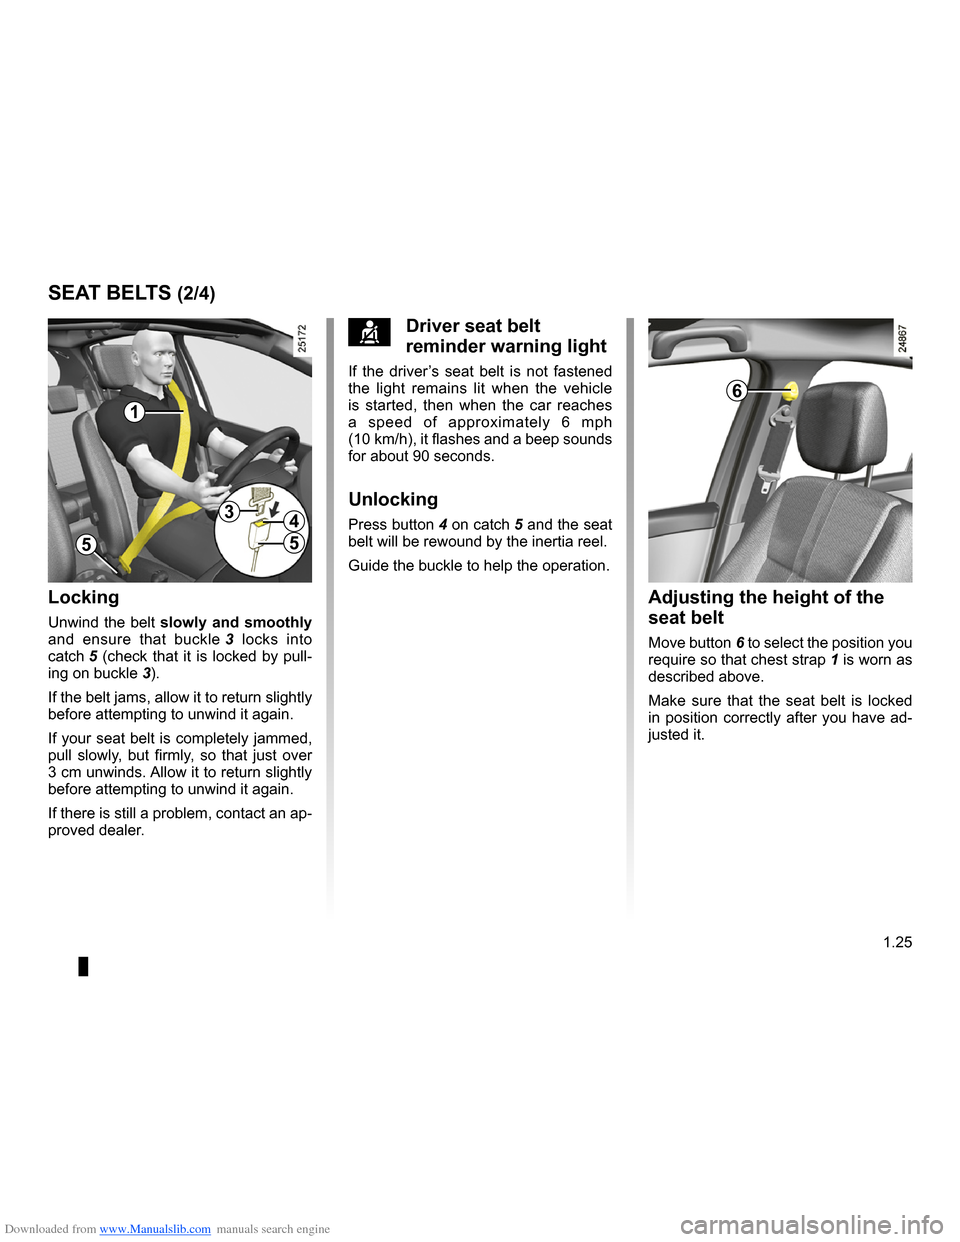 RENAULT CLIO 2009 X85 / 3.G Owners Manual, Page 31